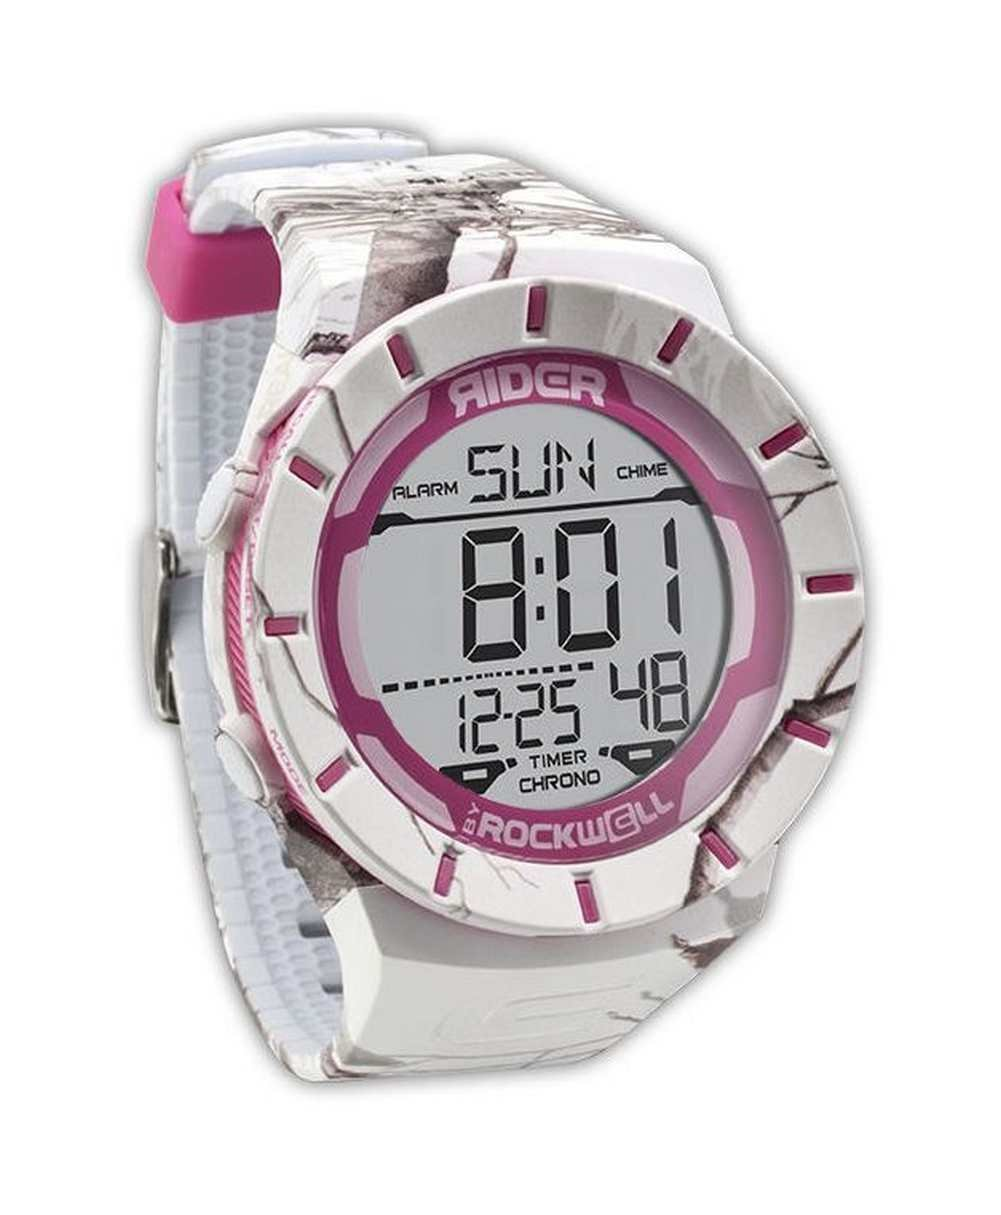 Rockwell Time Coliseum Realtree APS Camo Watch, White/Pink by Rockwell Time (Image #2)